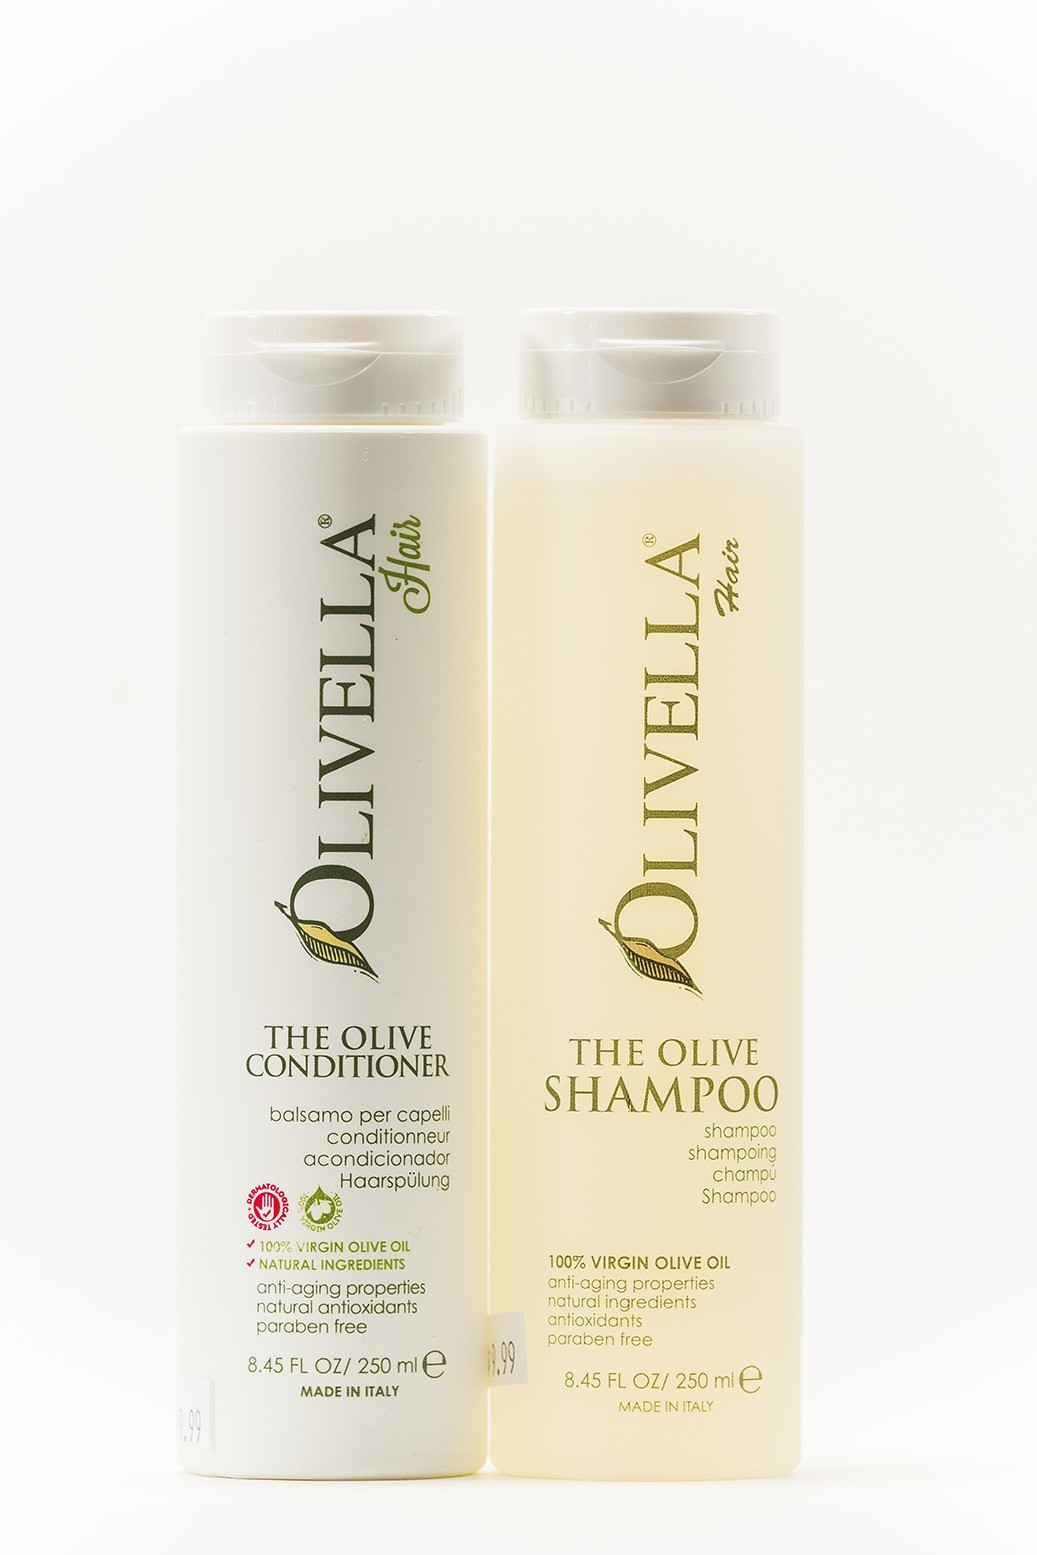 Olivella The Olive Conditioner